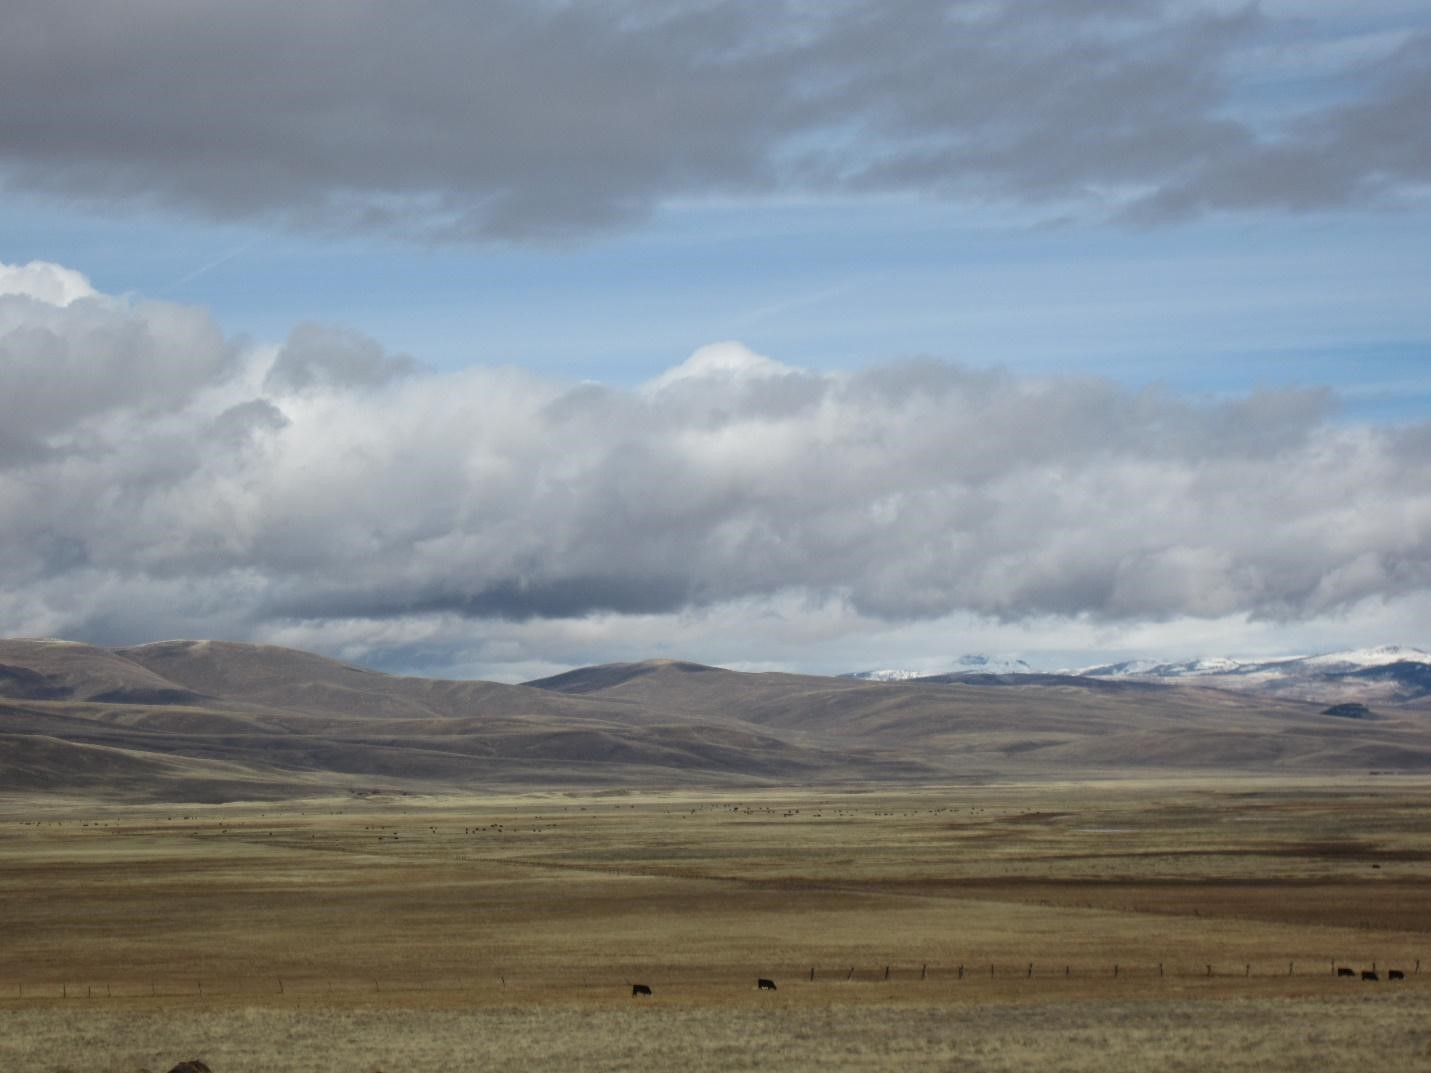 Cows grazing on rangeland near foothills and snow-capped mountains on a cloudy day.